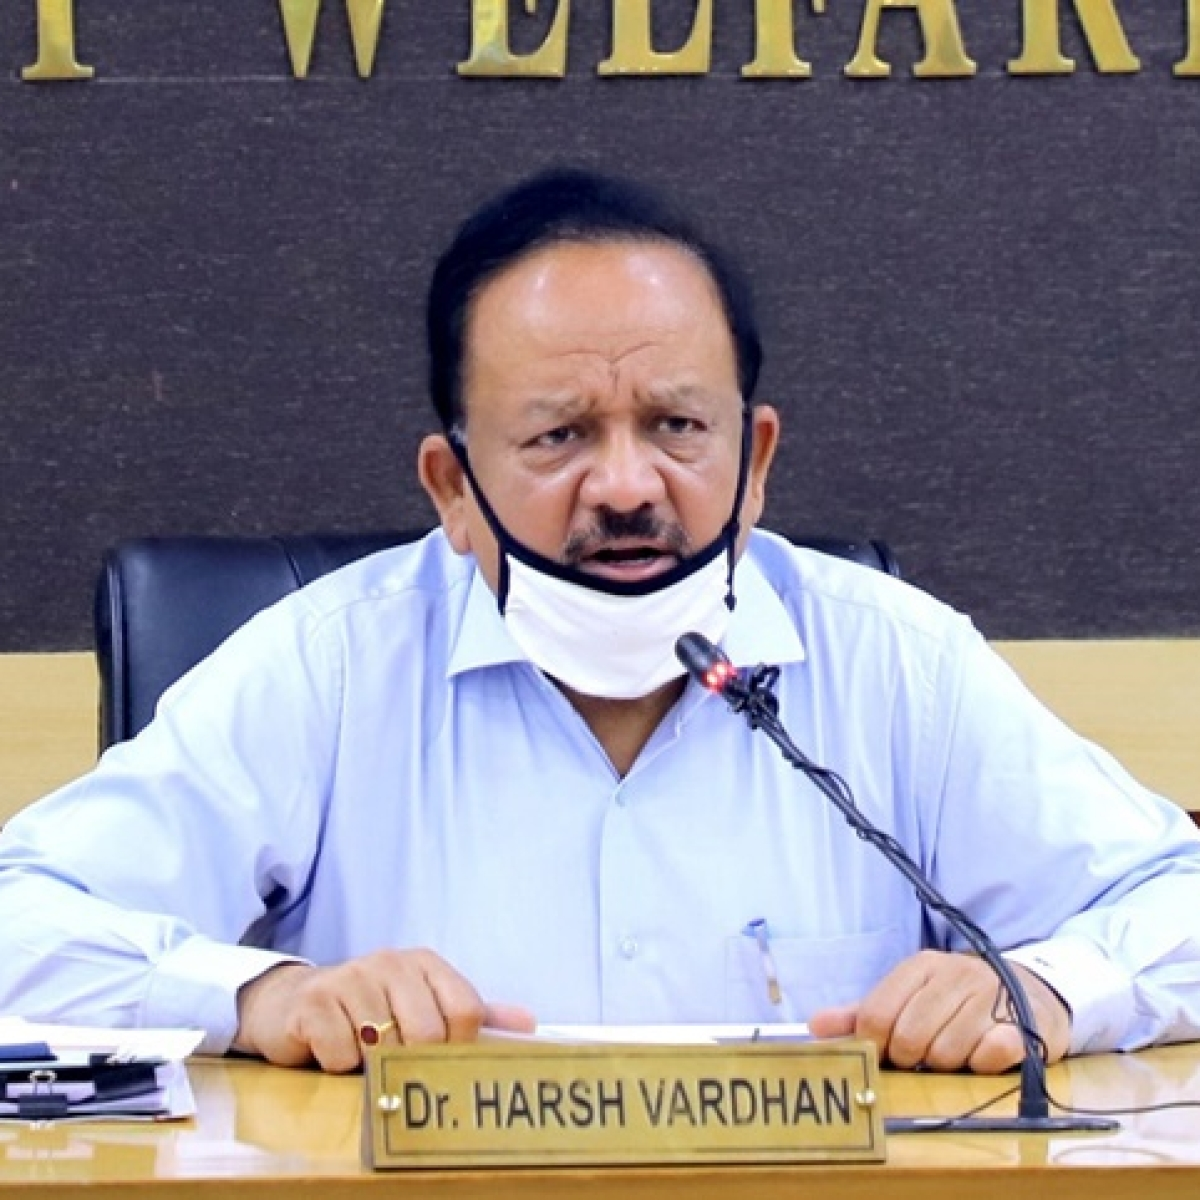 Dr at WHO: Amid coronavirus pandemic, Dr Harsh Vardhan takes over as Chairman of WHO's Executive Board